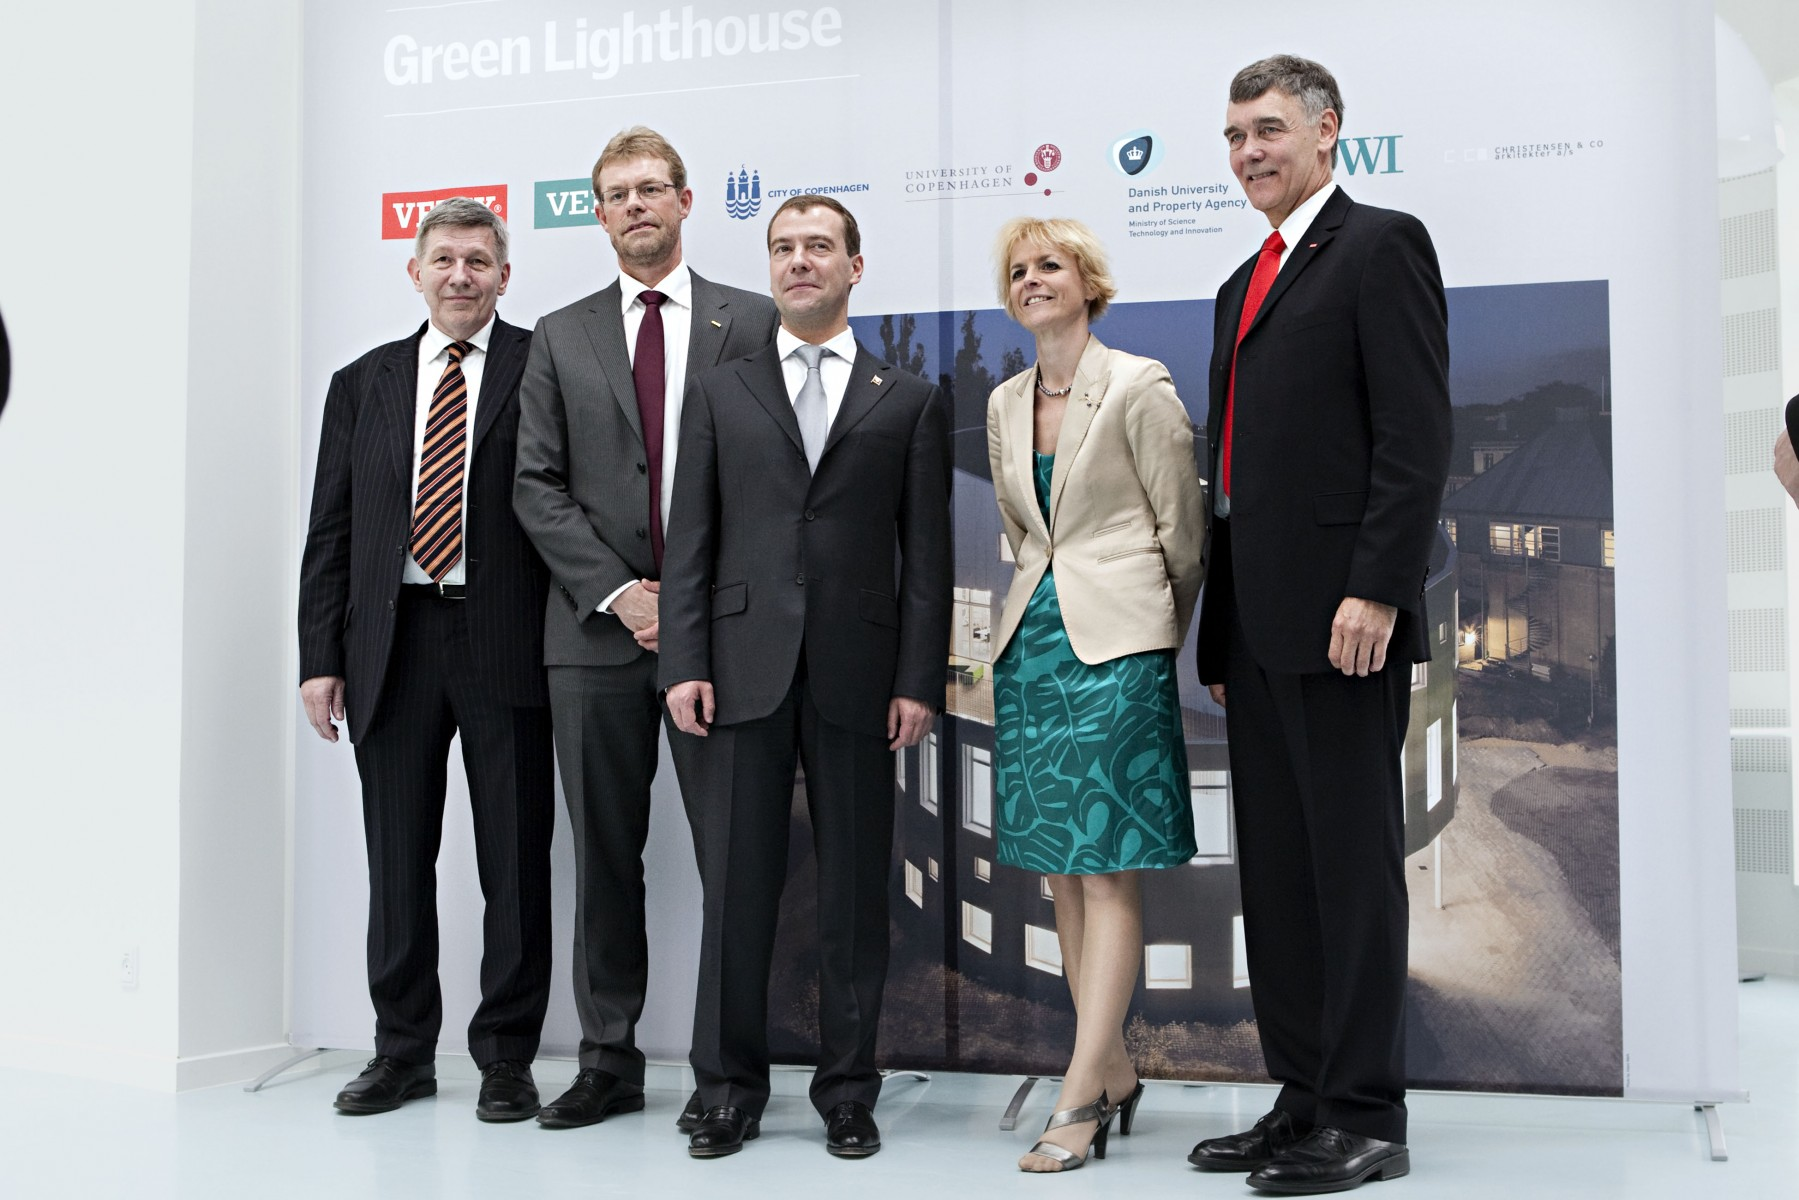 President Medvedev in Green Lighthouse